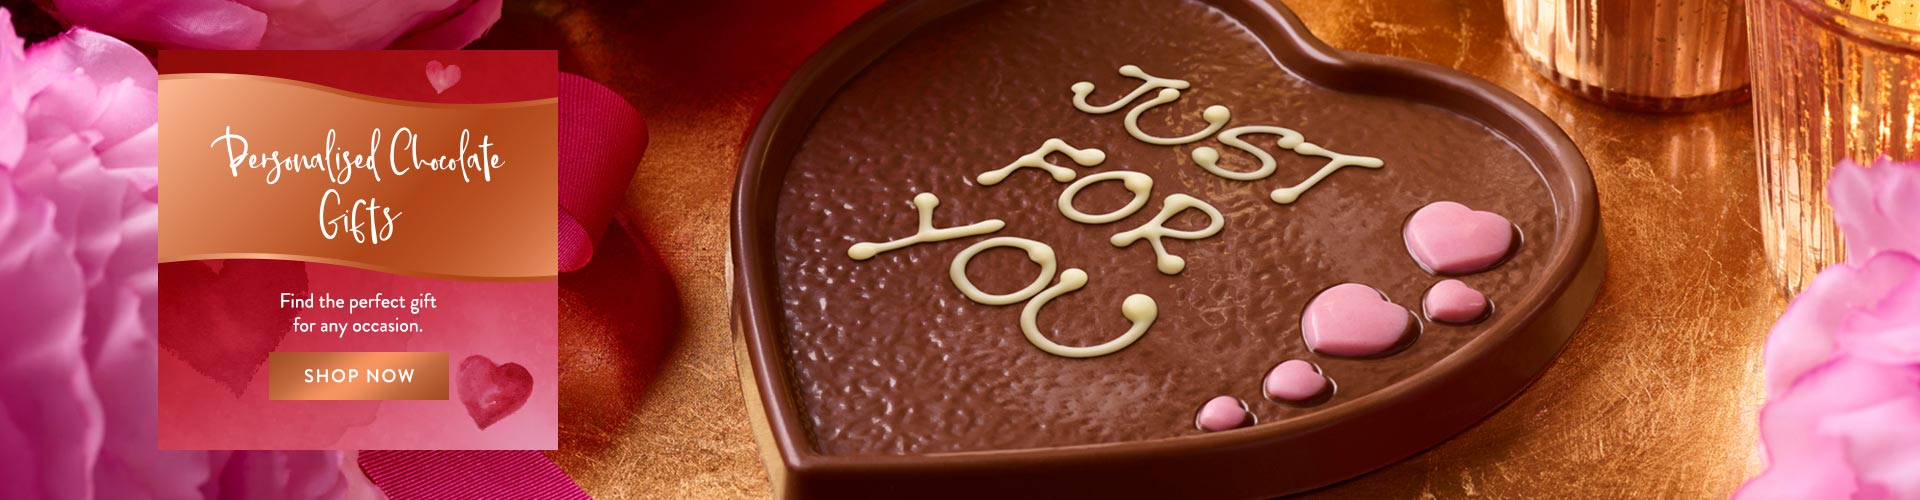 Personalised chocolate gifts - Find the perfect gift for any occasion